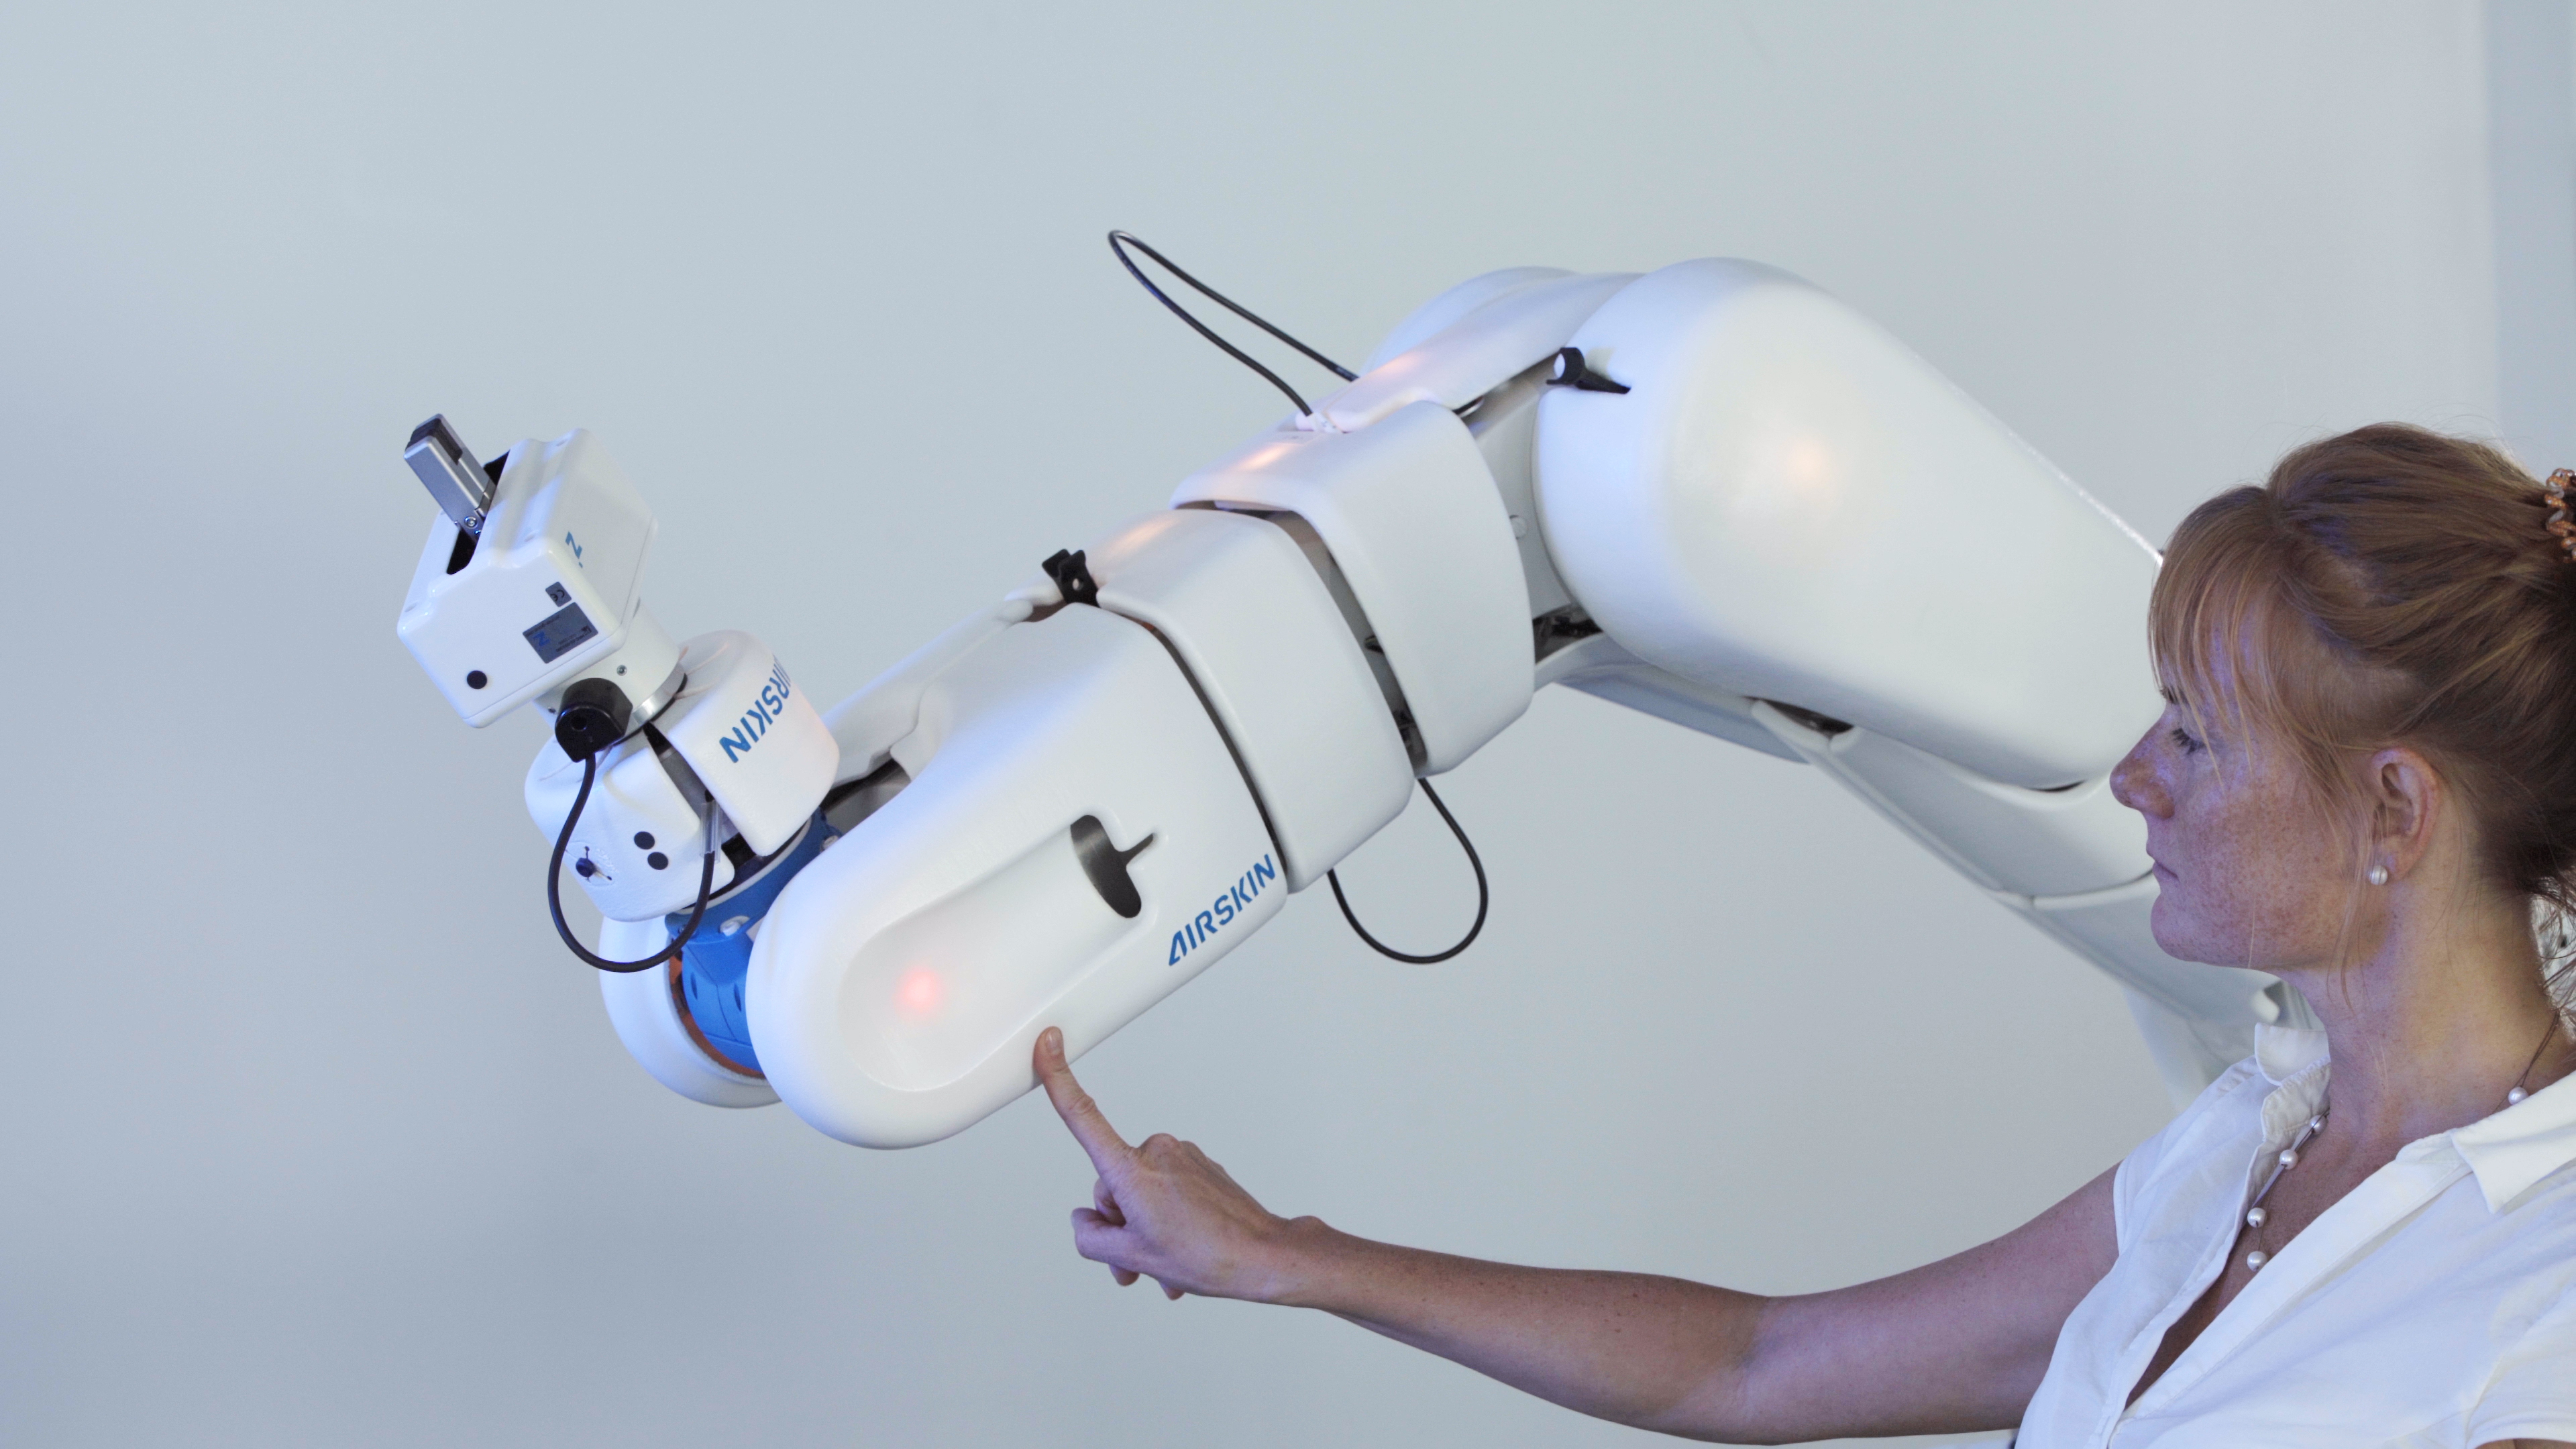 Girl touching industrial collaborative robot safely with her index finger